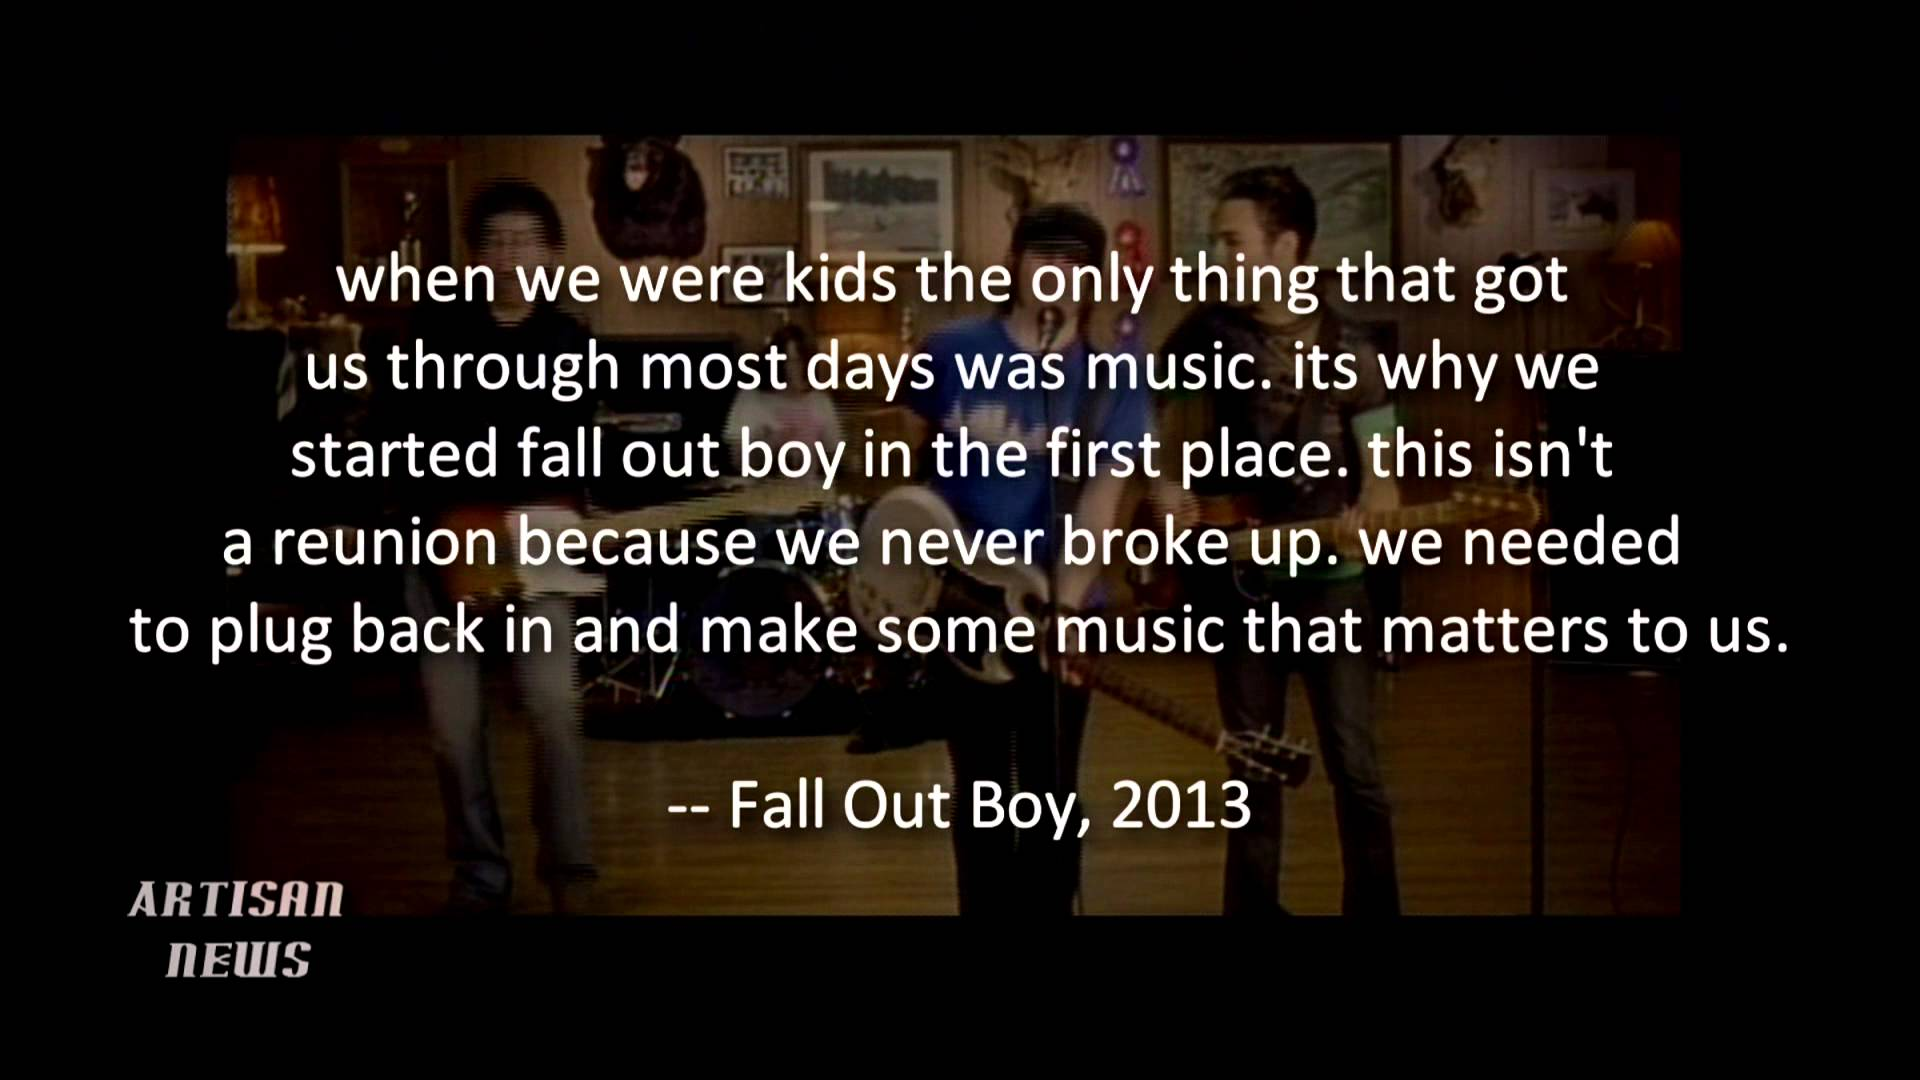 Fall Out Boy Song Quotes Save Rock And Roll | www.imgkid ...